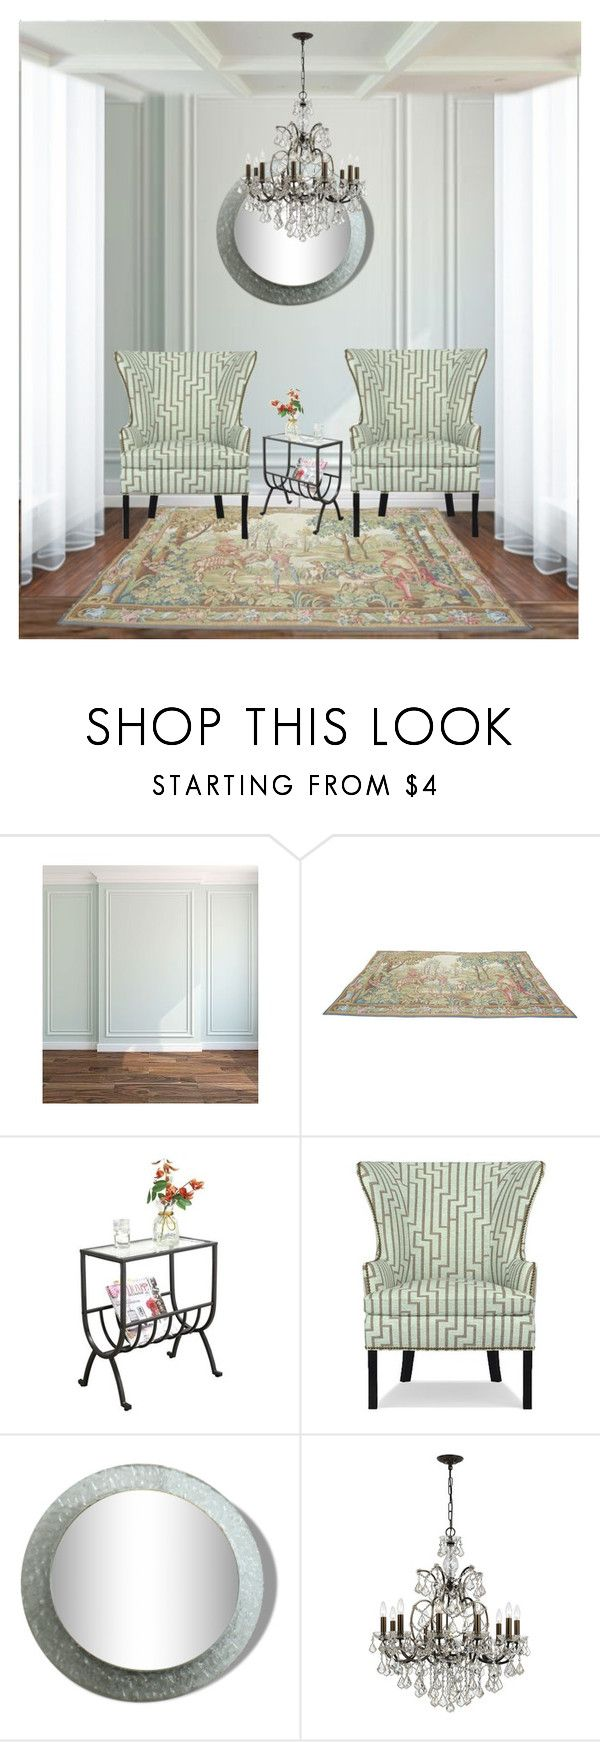 """""""The Wingback"""" by fowlerteetee ❤ liked on Polyvore featuring interior, interiors, interior design, home, home decor, interior decorating, Monarch, Williams-Sonoma, Swarovski and changeitup"""